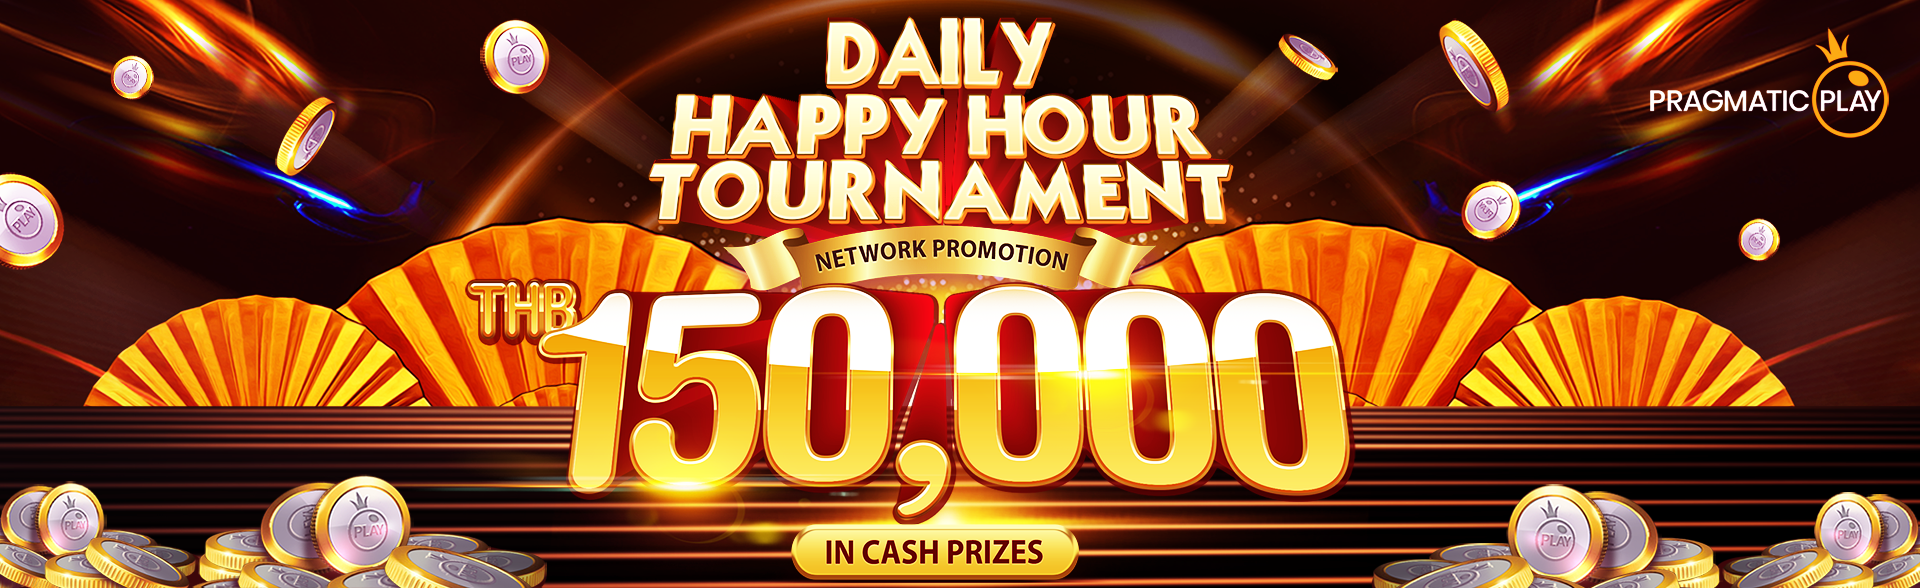 Daily Happy Hour Tournament Winner List Thumbnail